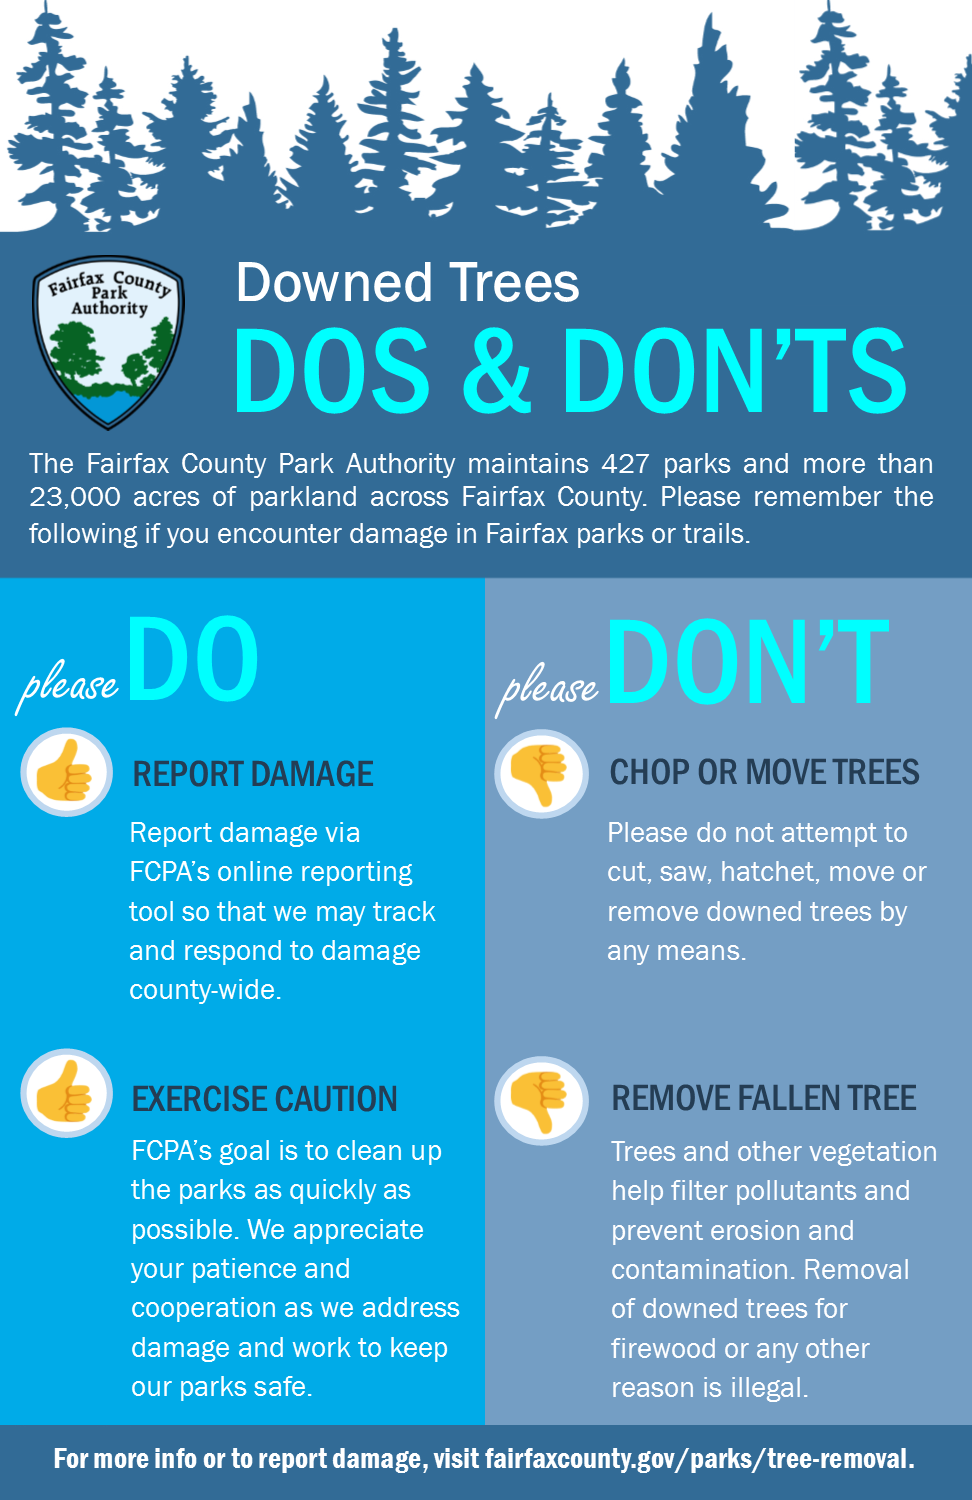 Downed Trees Dos &Don't